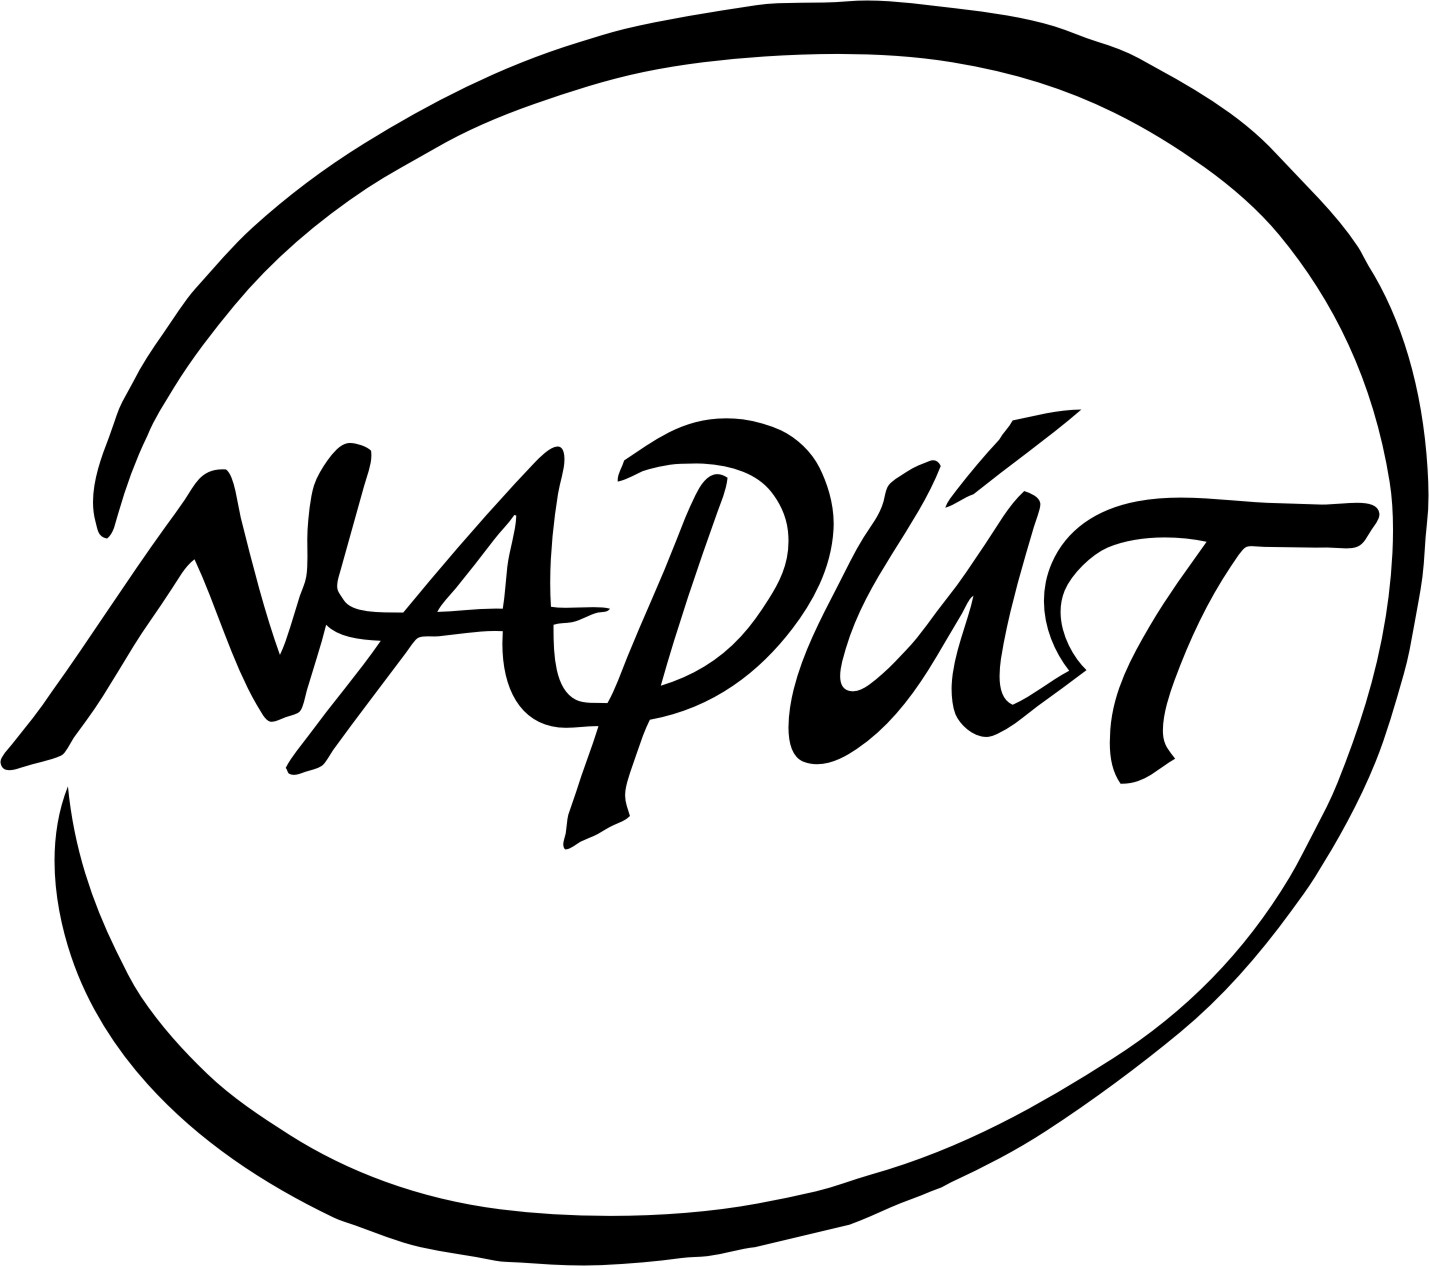 naput_logo.jpg